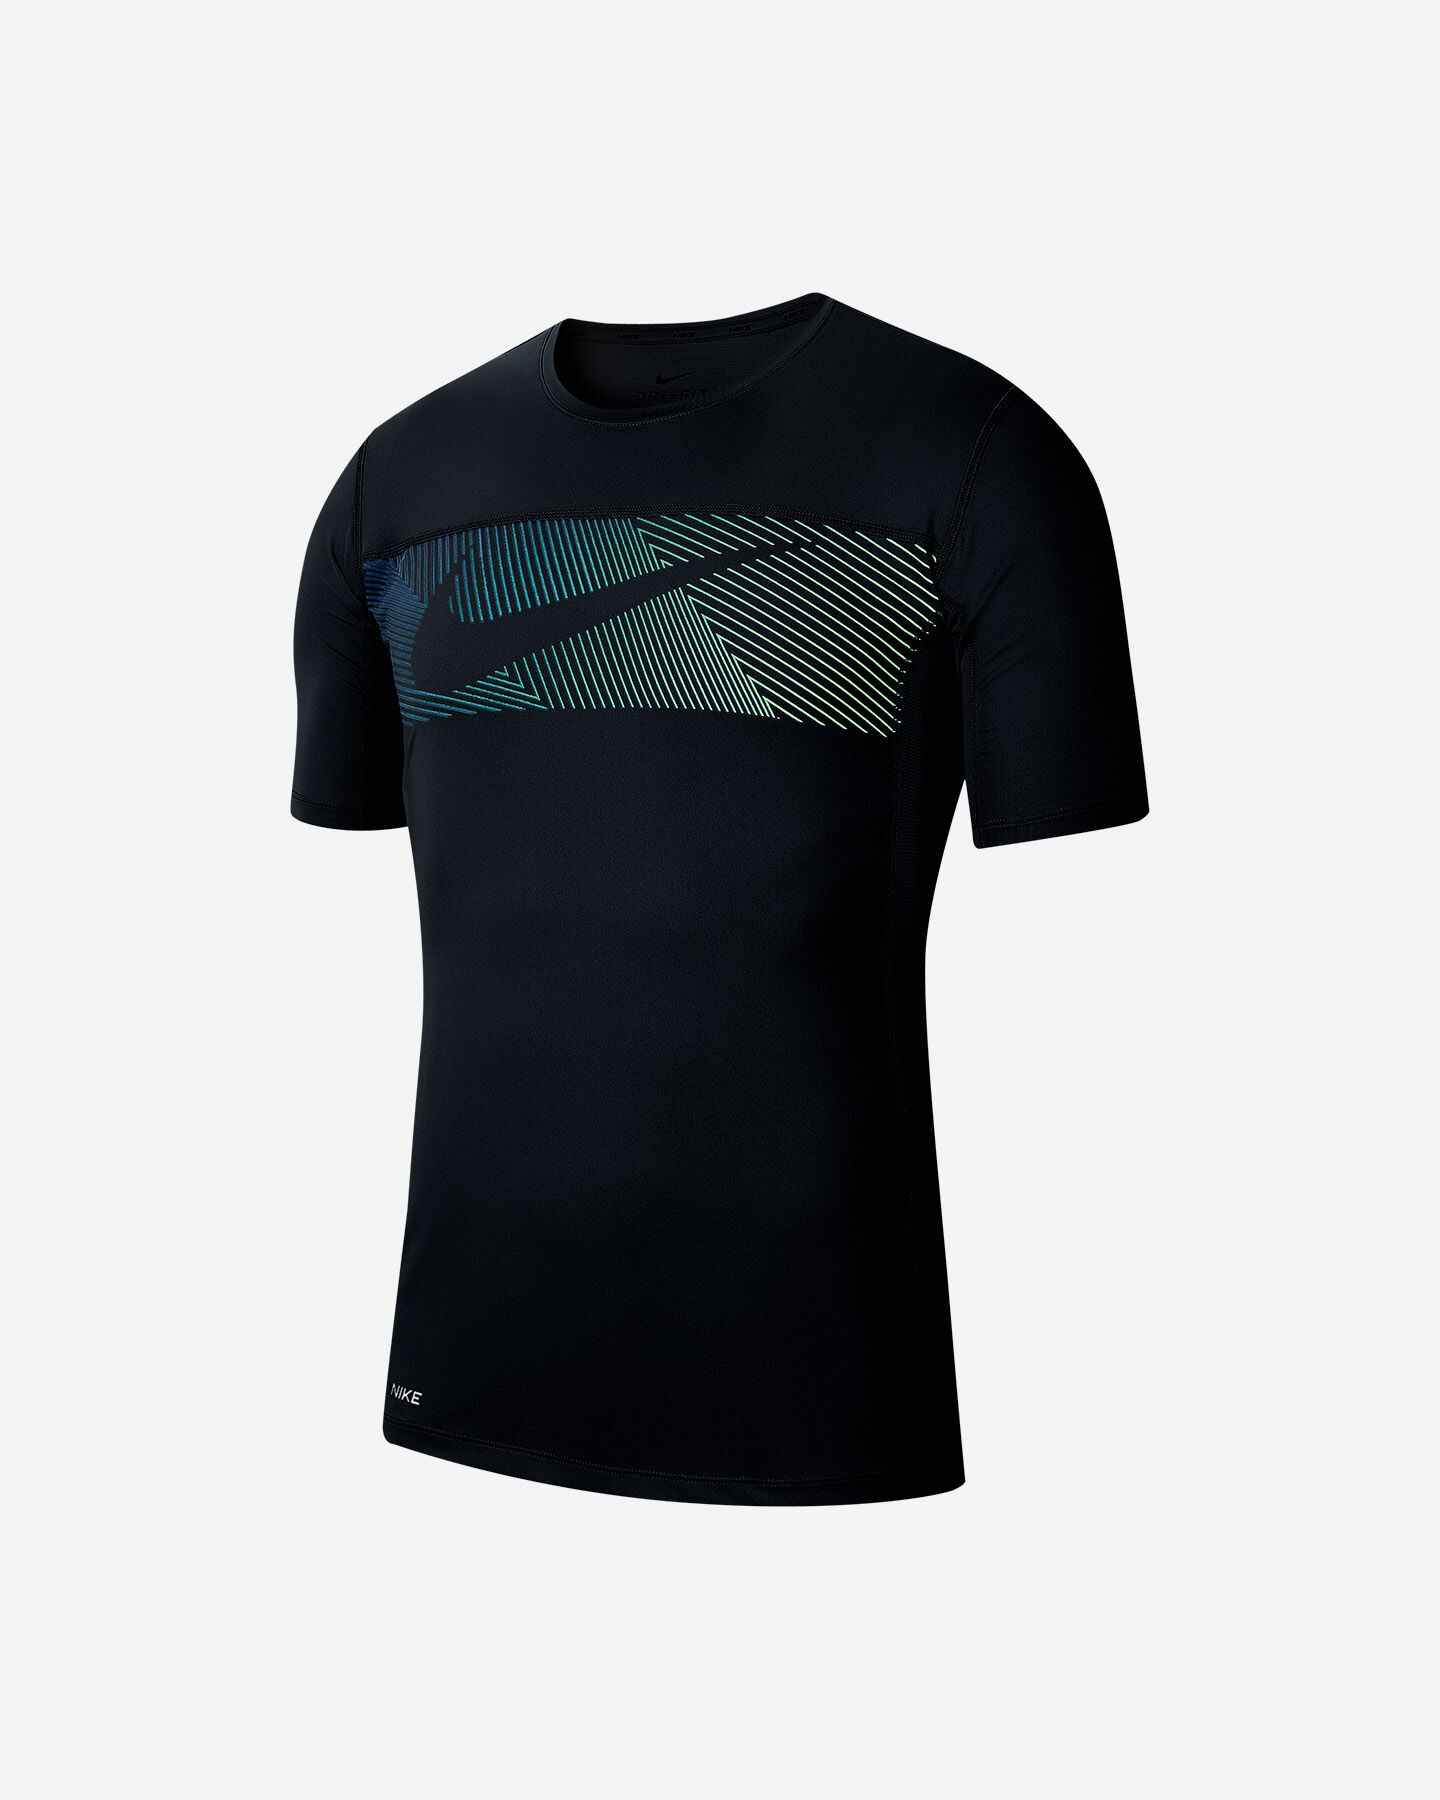 T-Shirt training NIKE TOP LOGO M S5196087 scatto 0